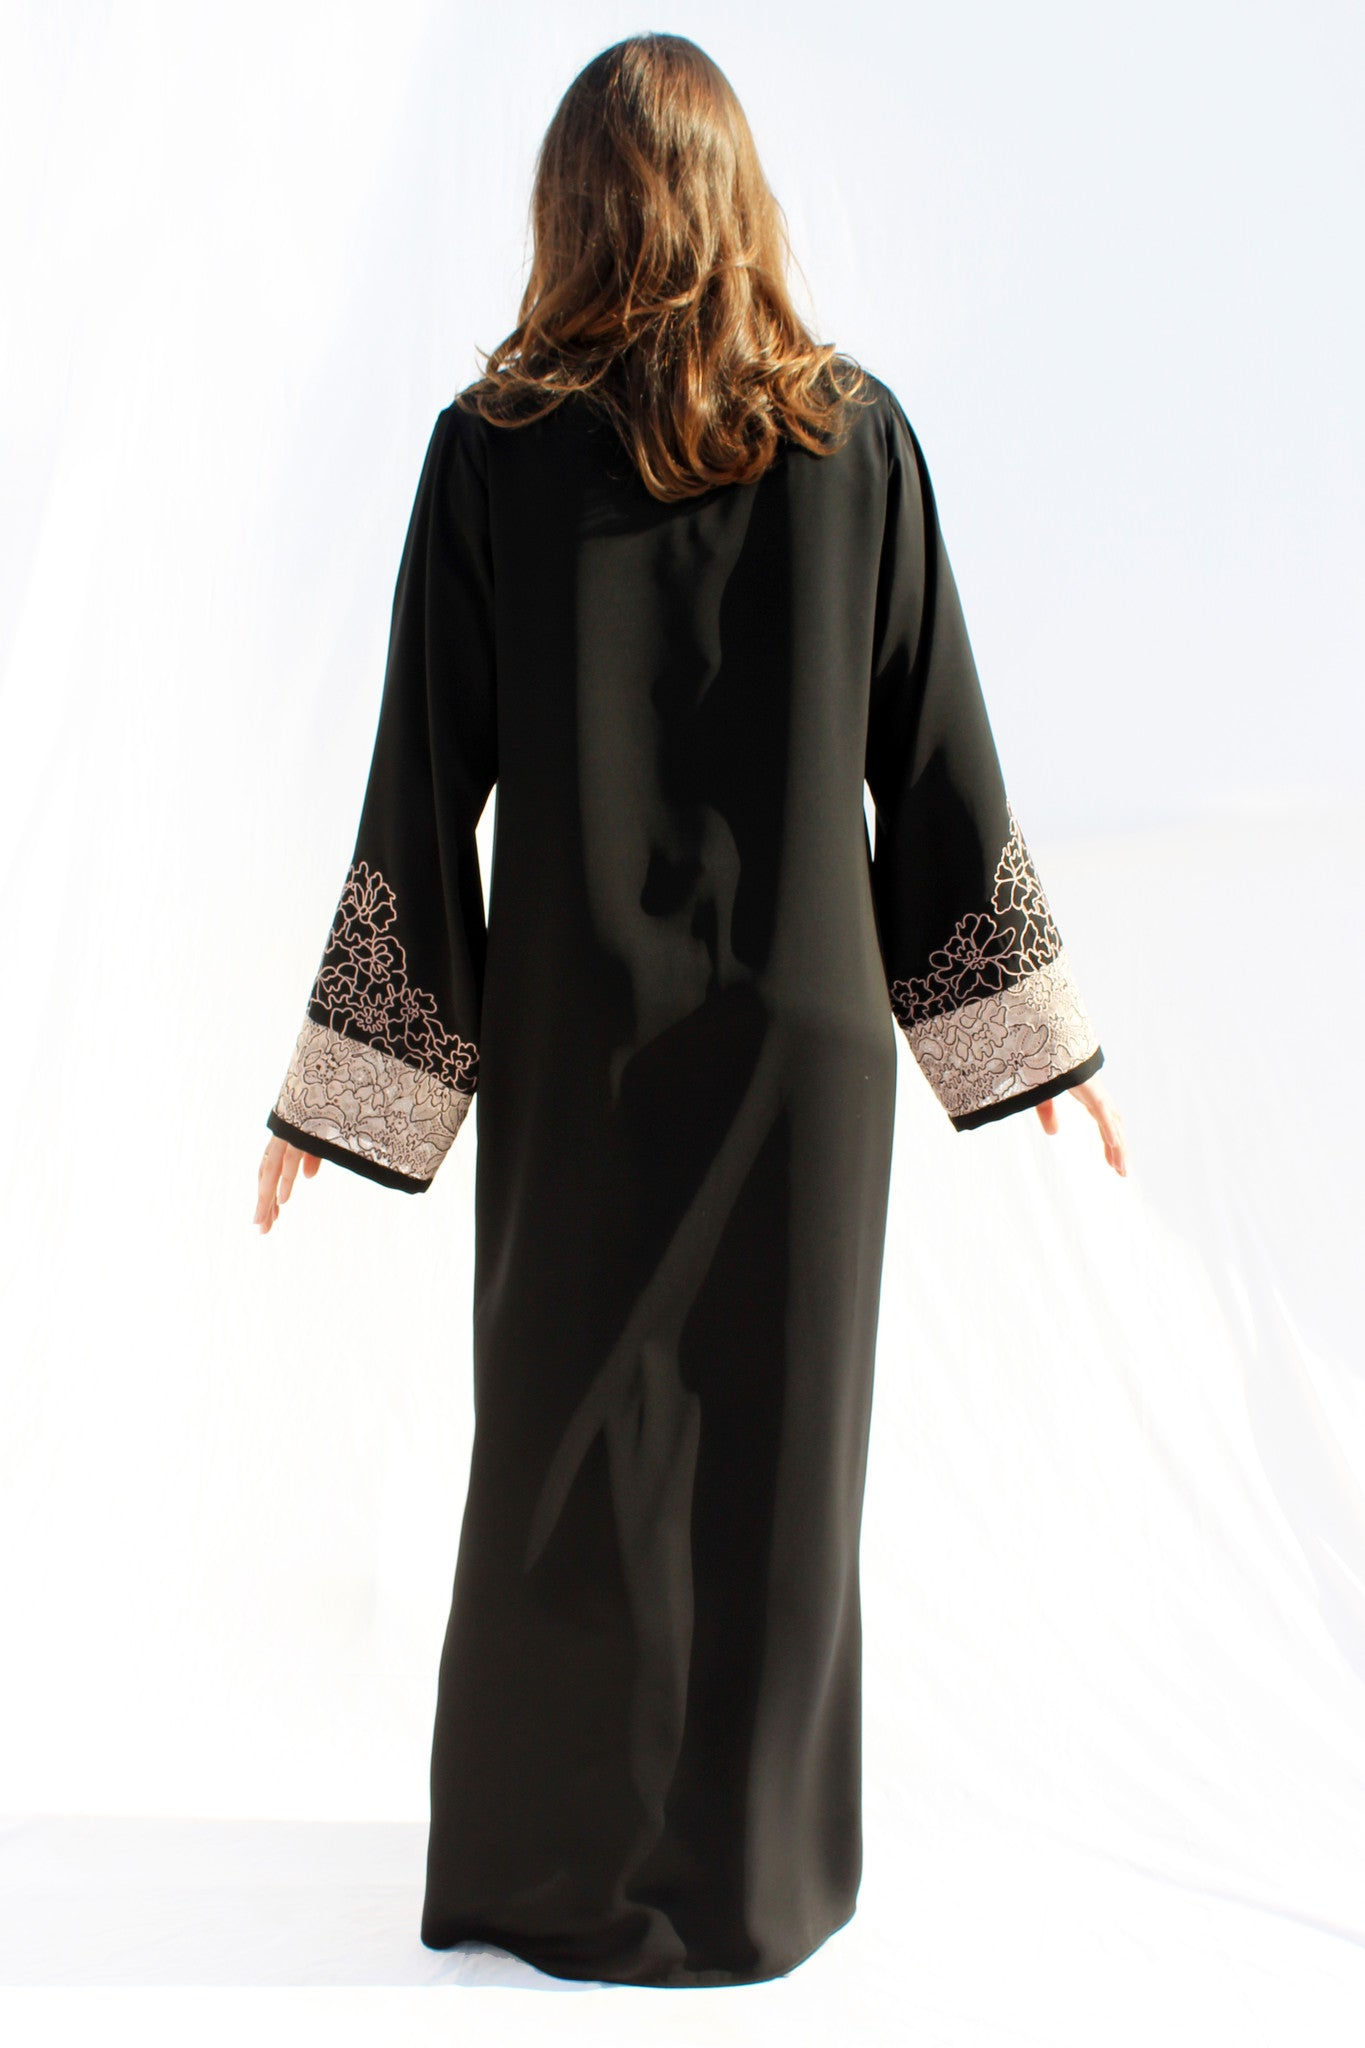 AMELIE - ACR2118A - Arabesque Classic cut abaya shape embellished with lace hand-embroidered with thread + Flower motif Thread embroidery on sleeves and asymmetrically on front + Back in plain black.